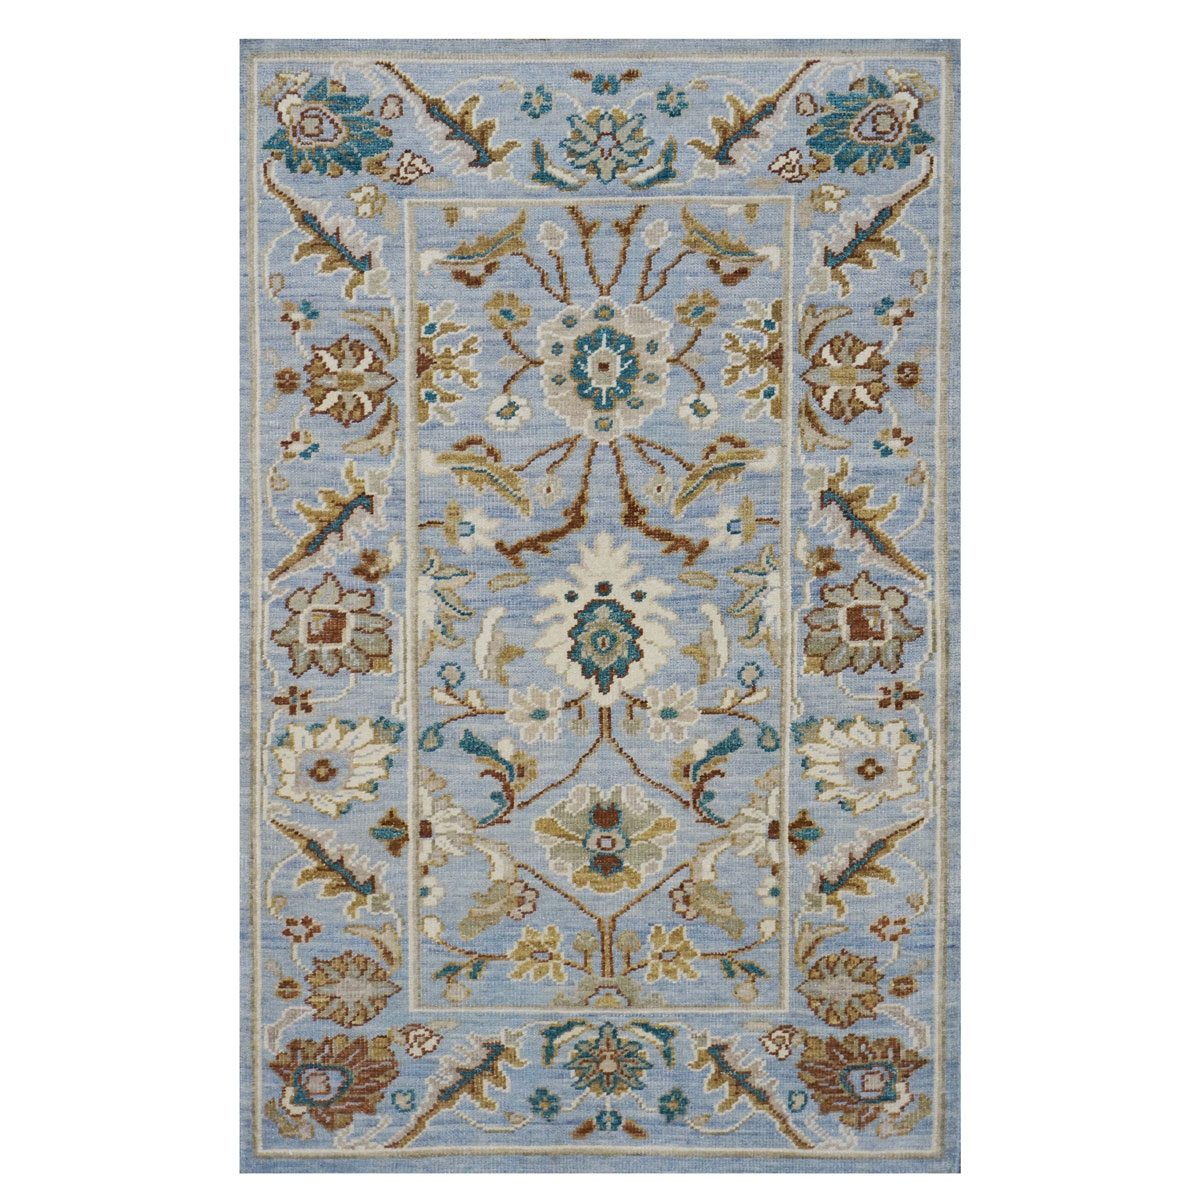 Area Rugs www.ashlyrugs.com Sultanbad Masters Collection 3 x 5 Rug